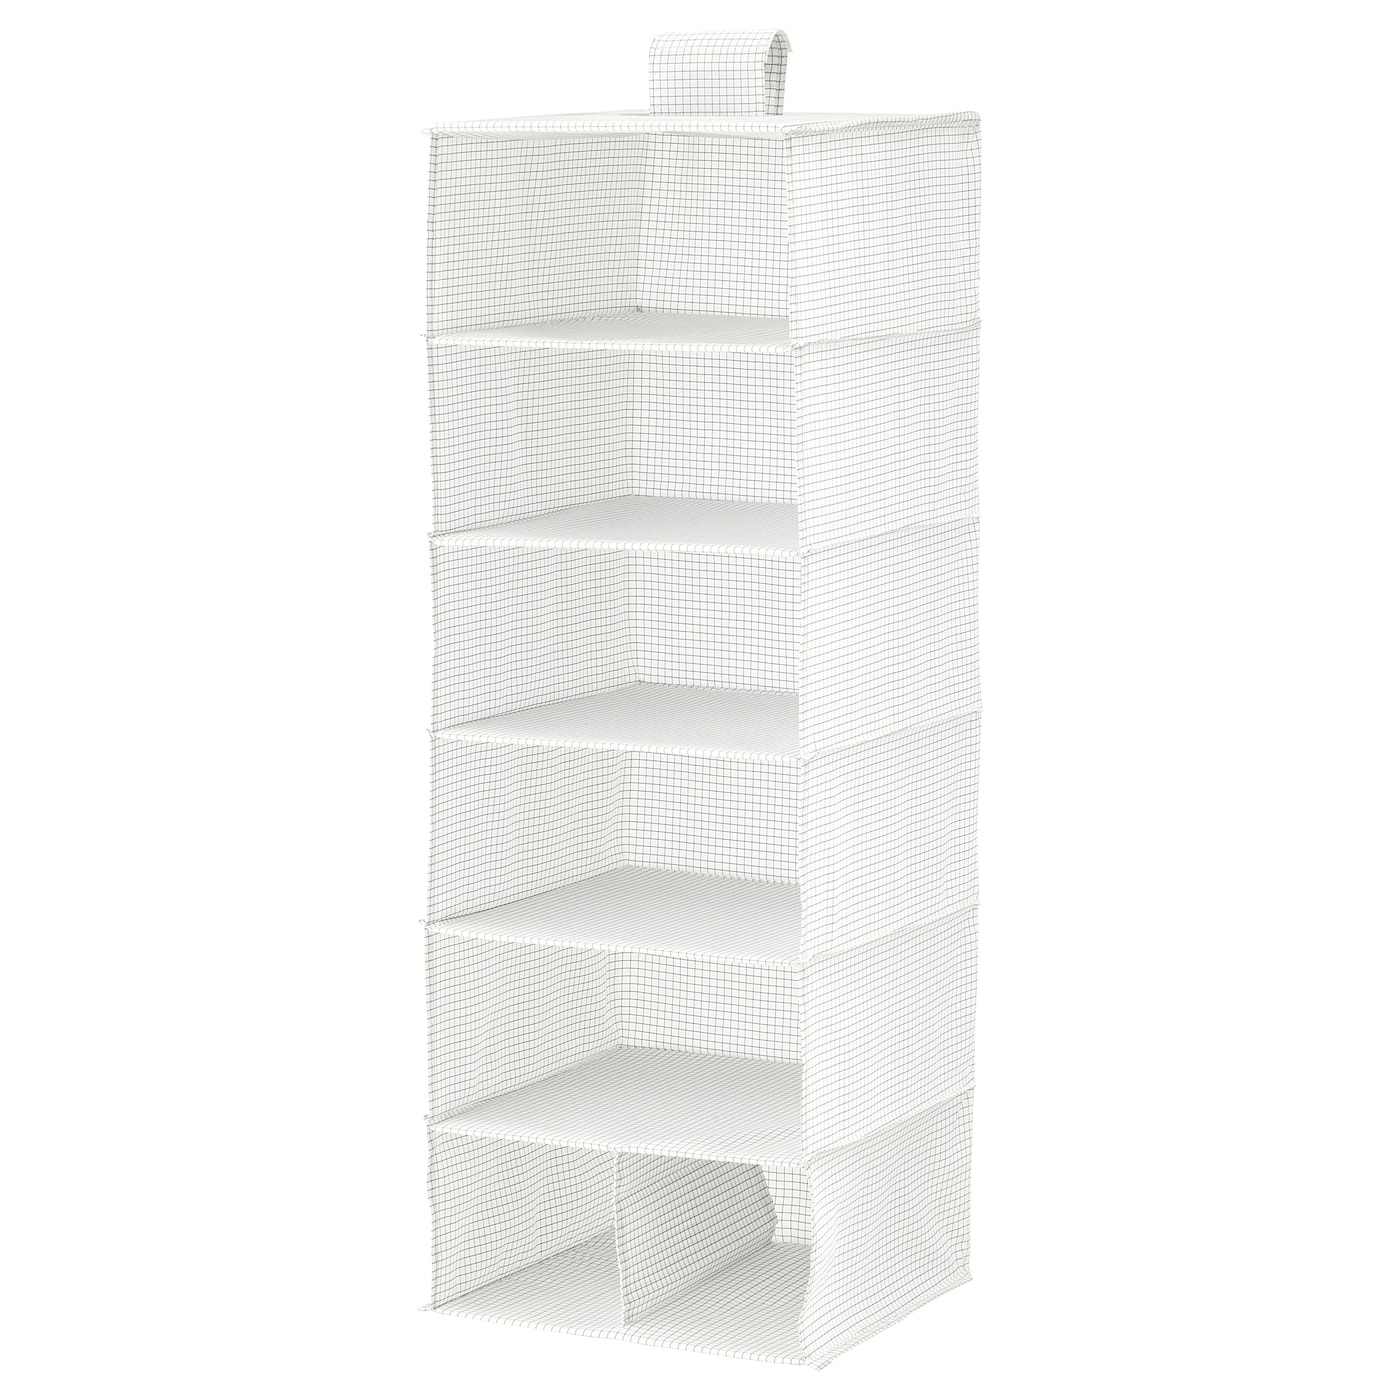 IKEA STUK storage with 7 compartments Takes little room to store as it folds flat.